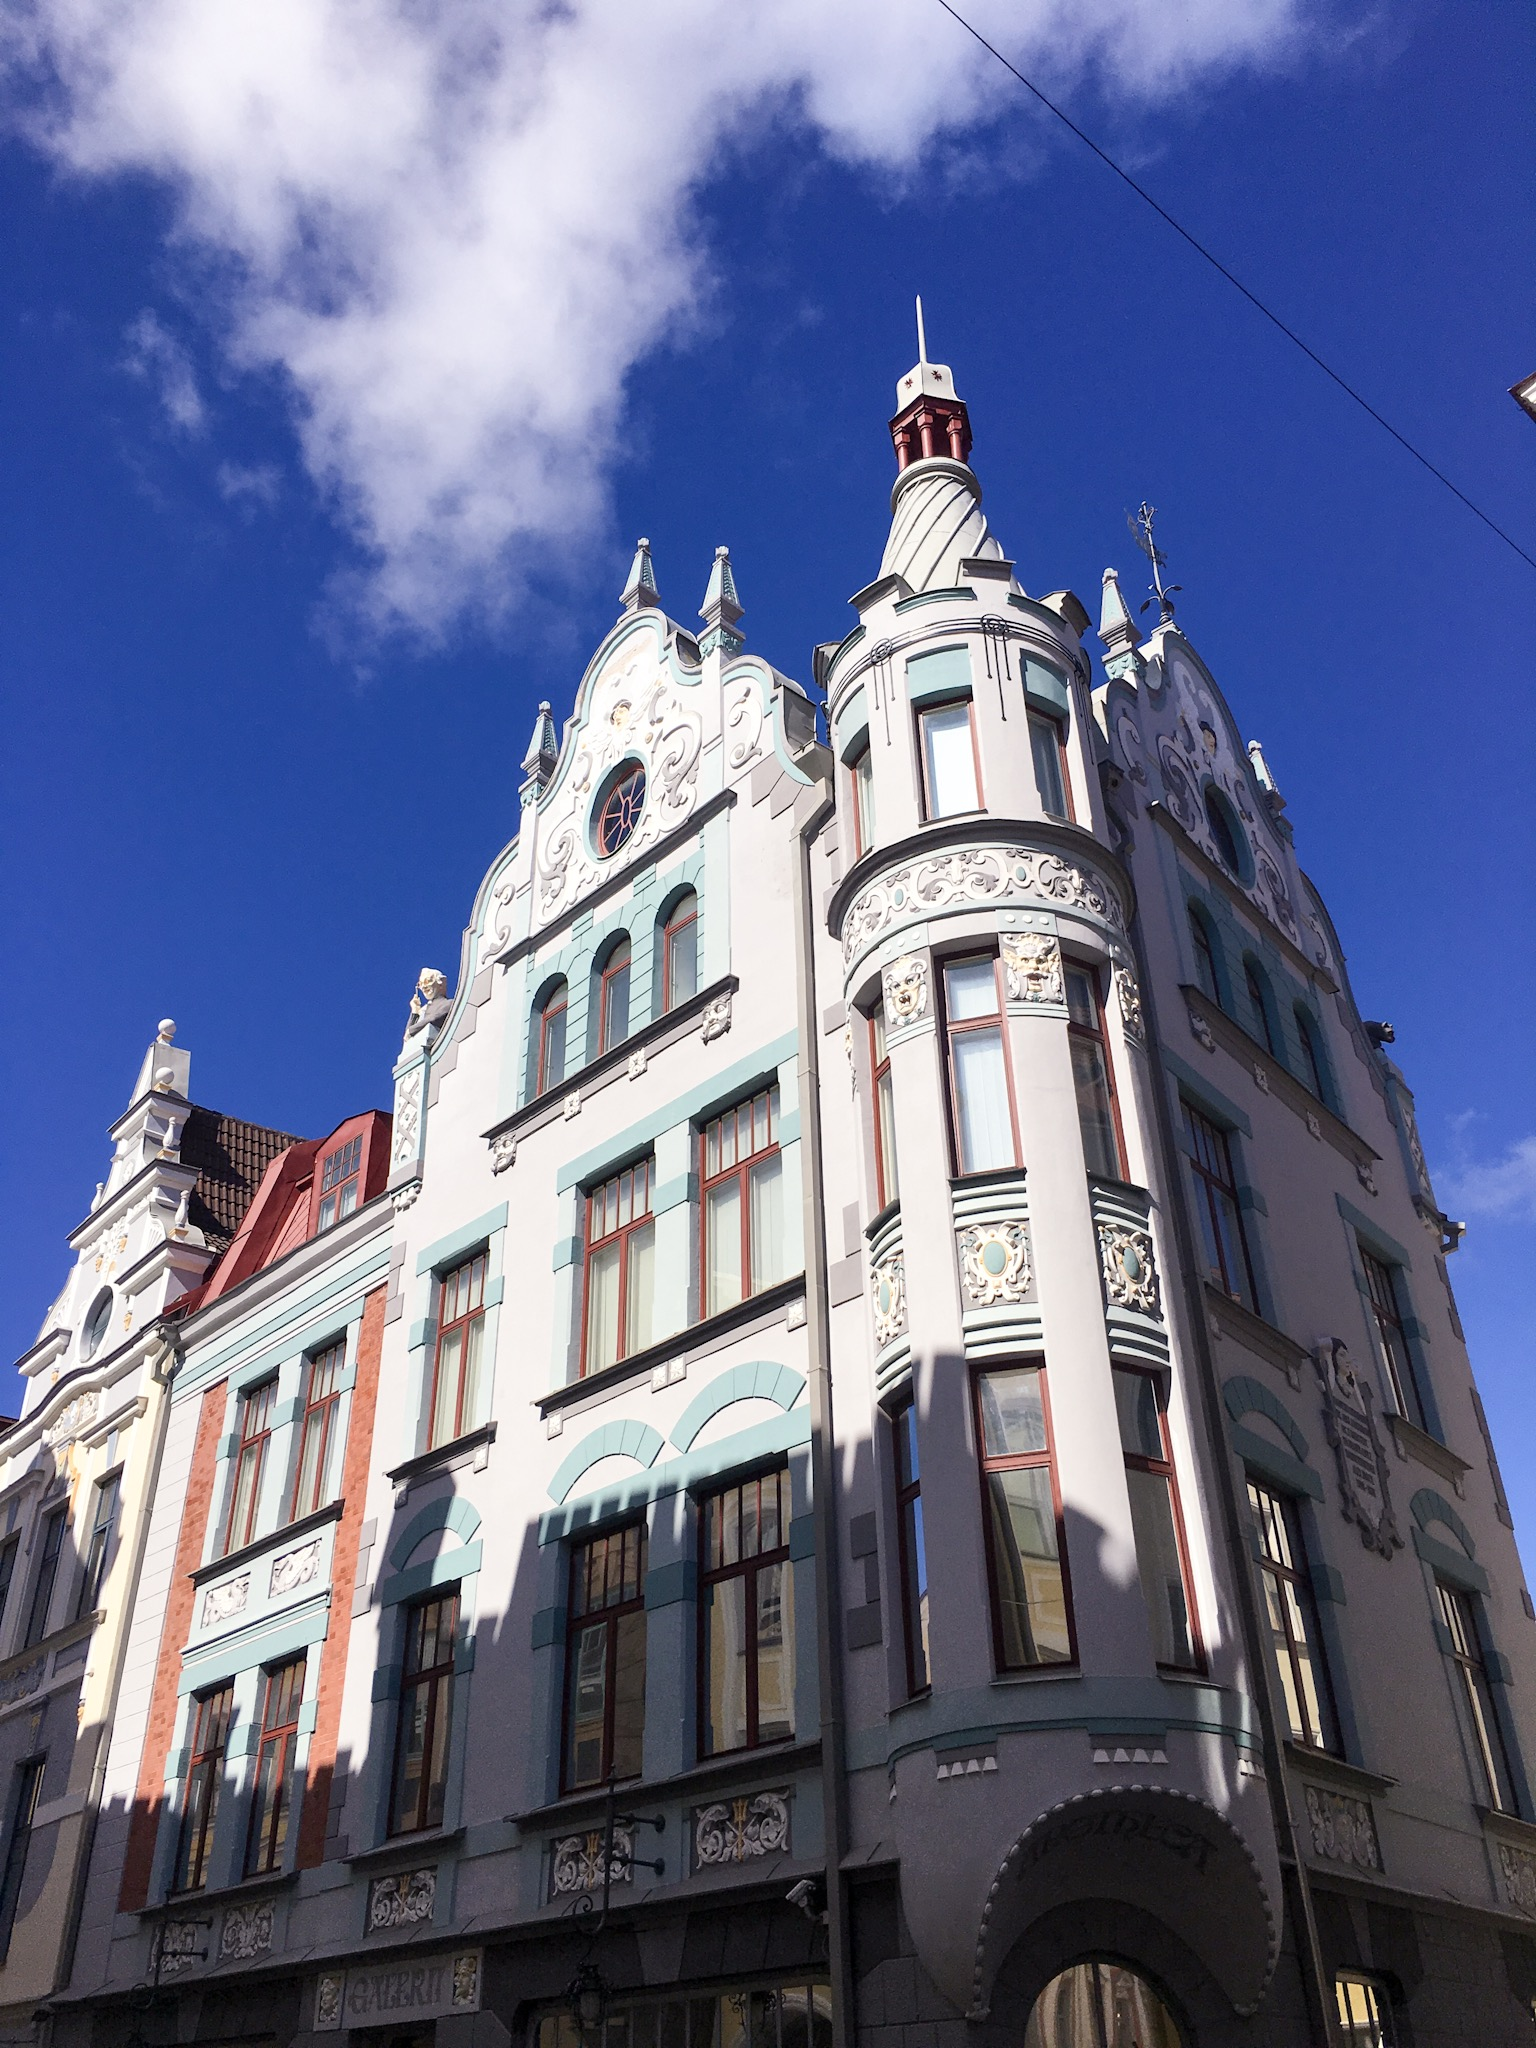 Pretty building in Tallinn, Estonia